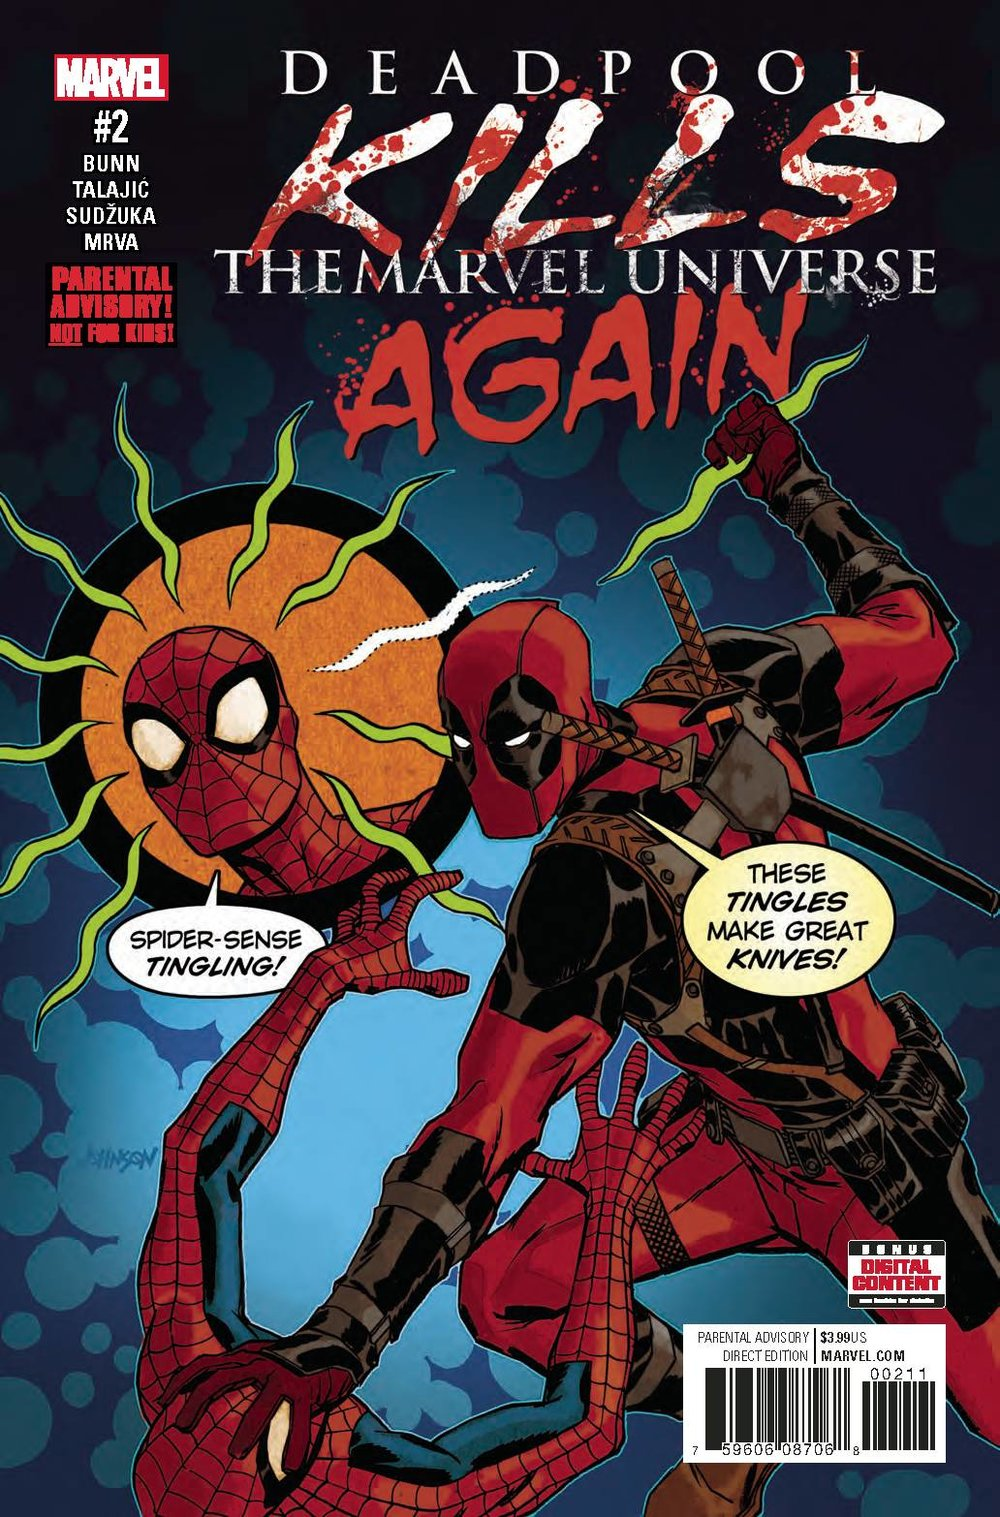 DEADPOOL KILLS MARVEL UNIVERSE AGAIN 2.jpg